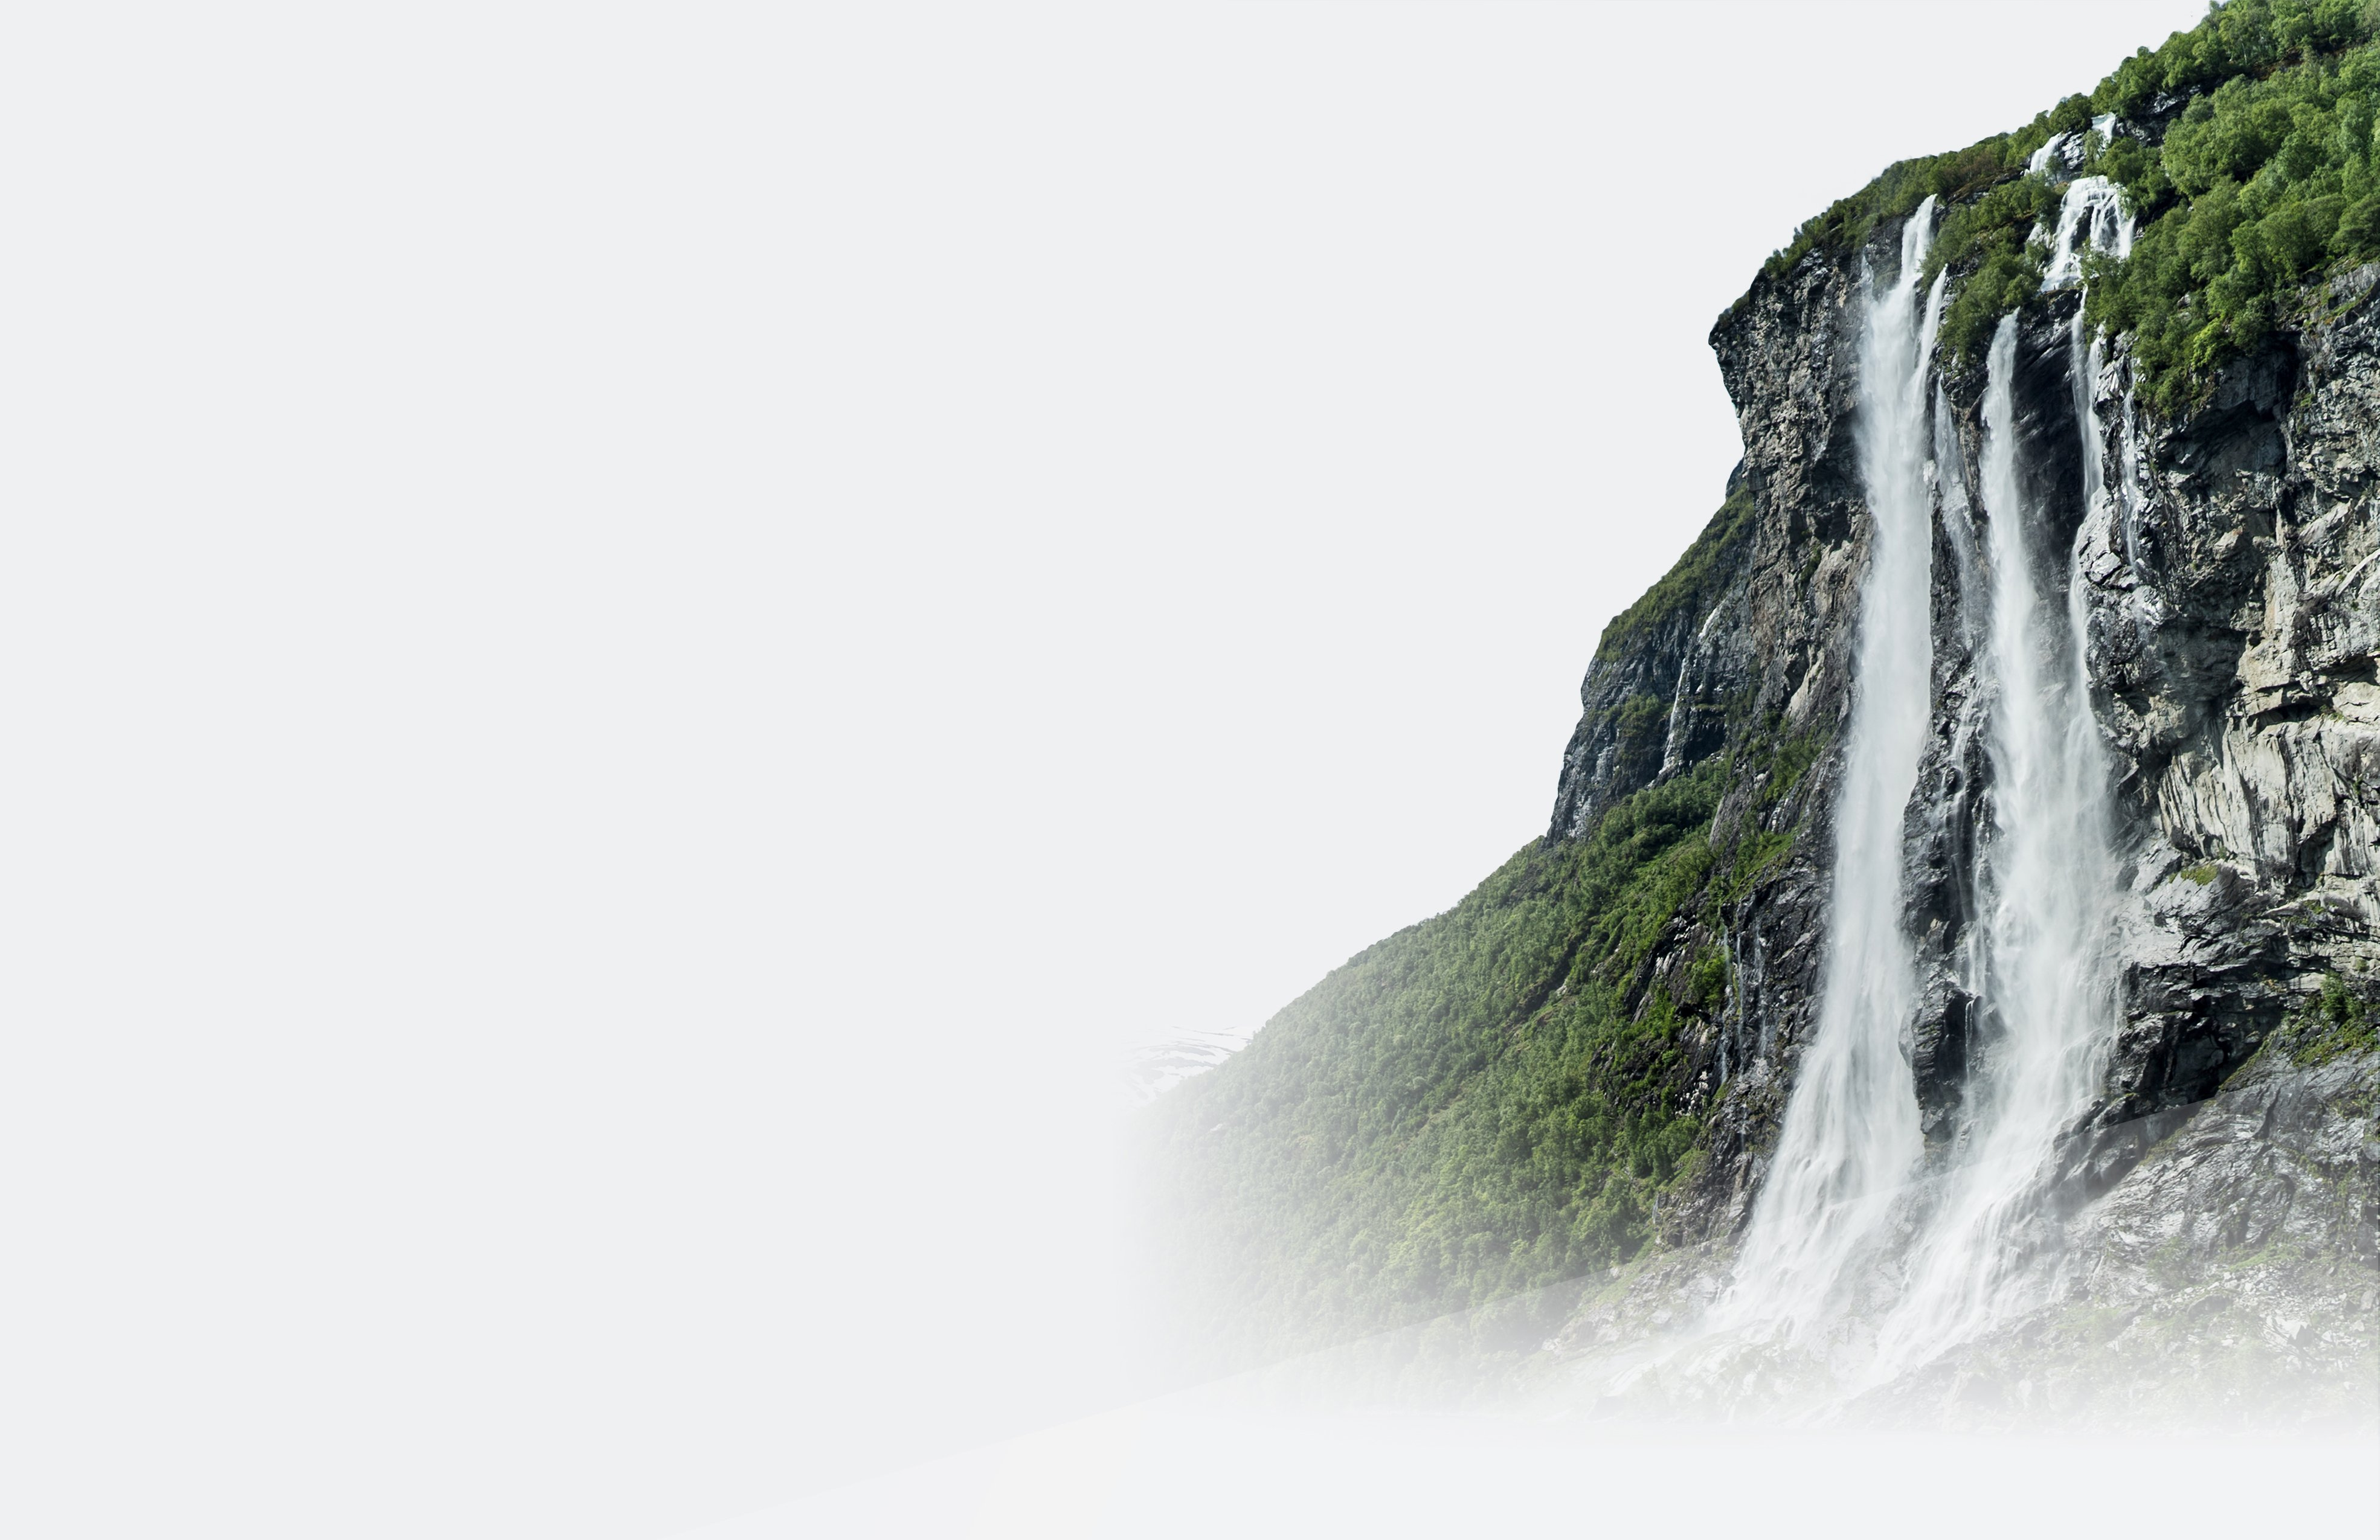 Mountain with waterfall